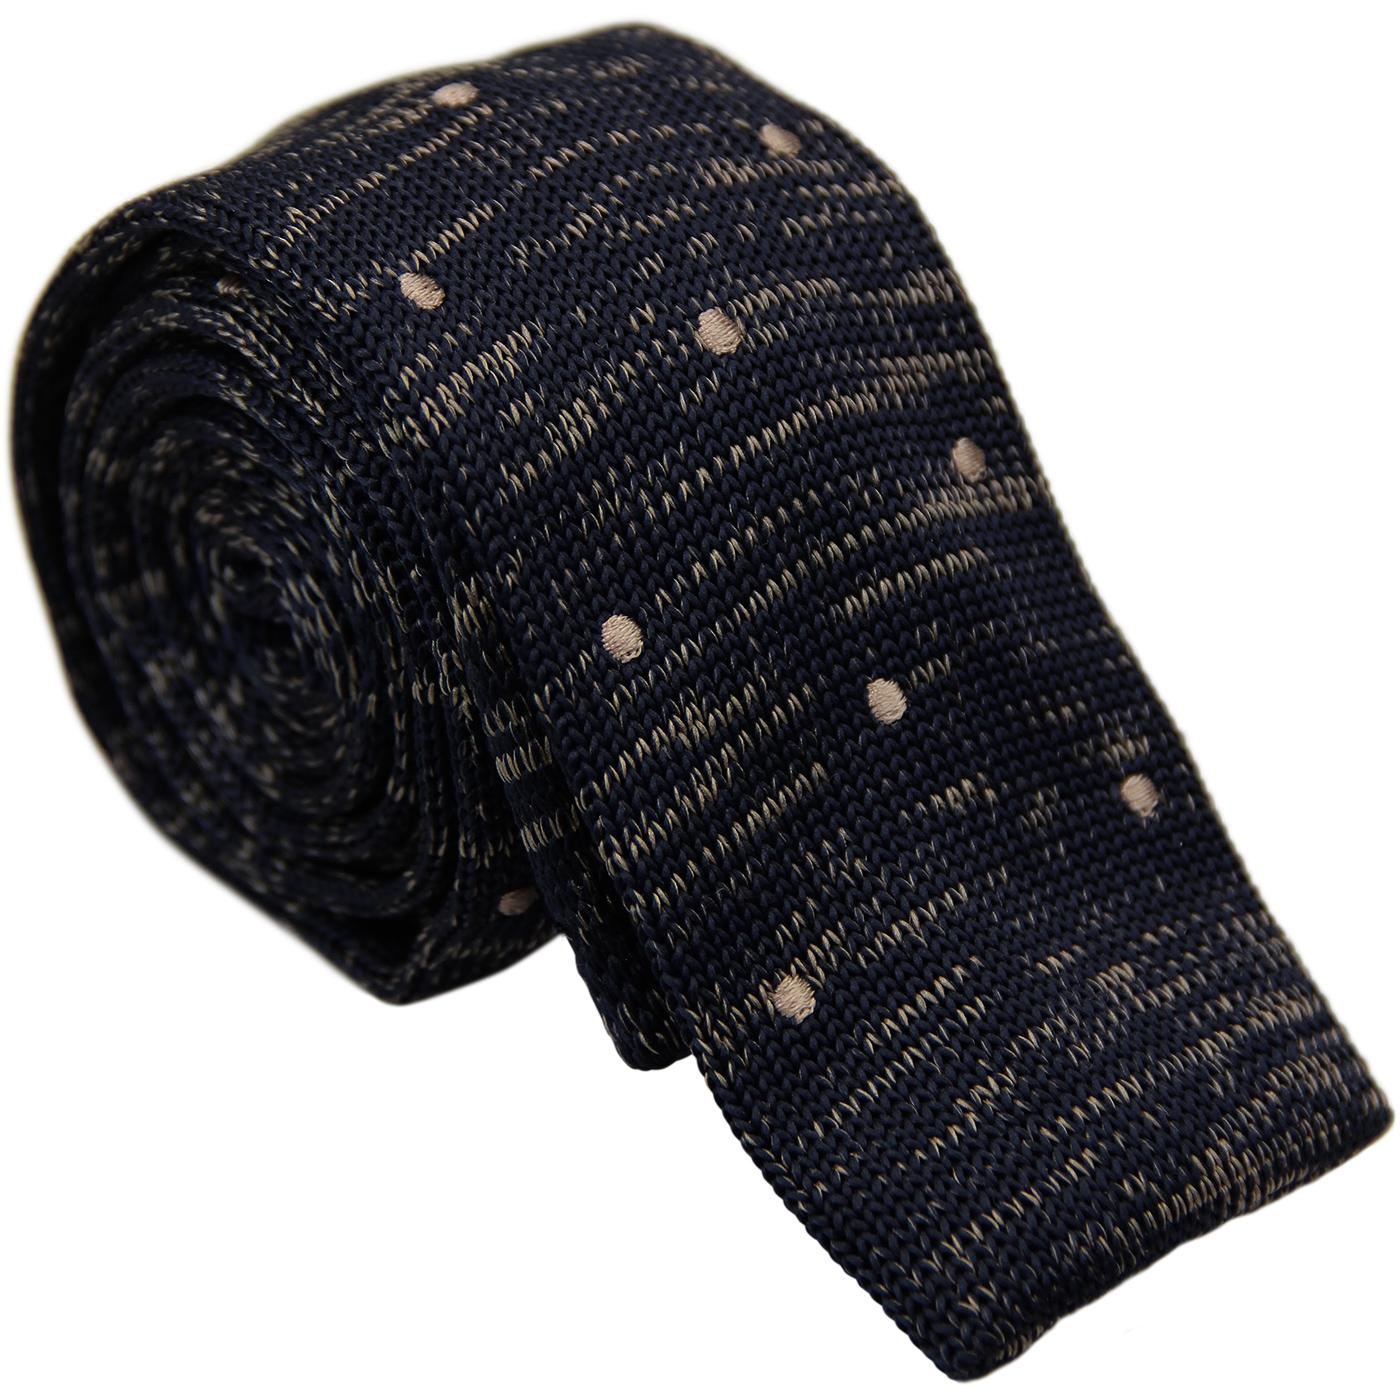 GIBSON LONDON 1960s Mod Spot Knitted Tie (Navy)